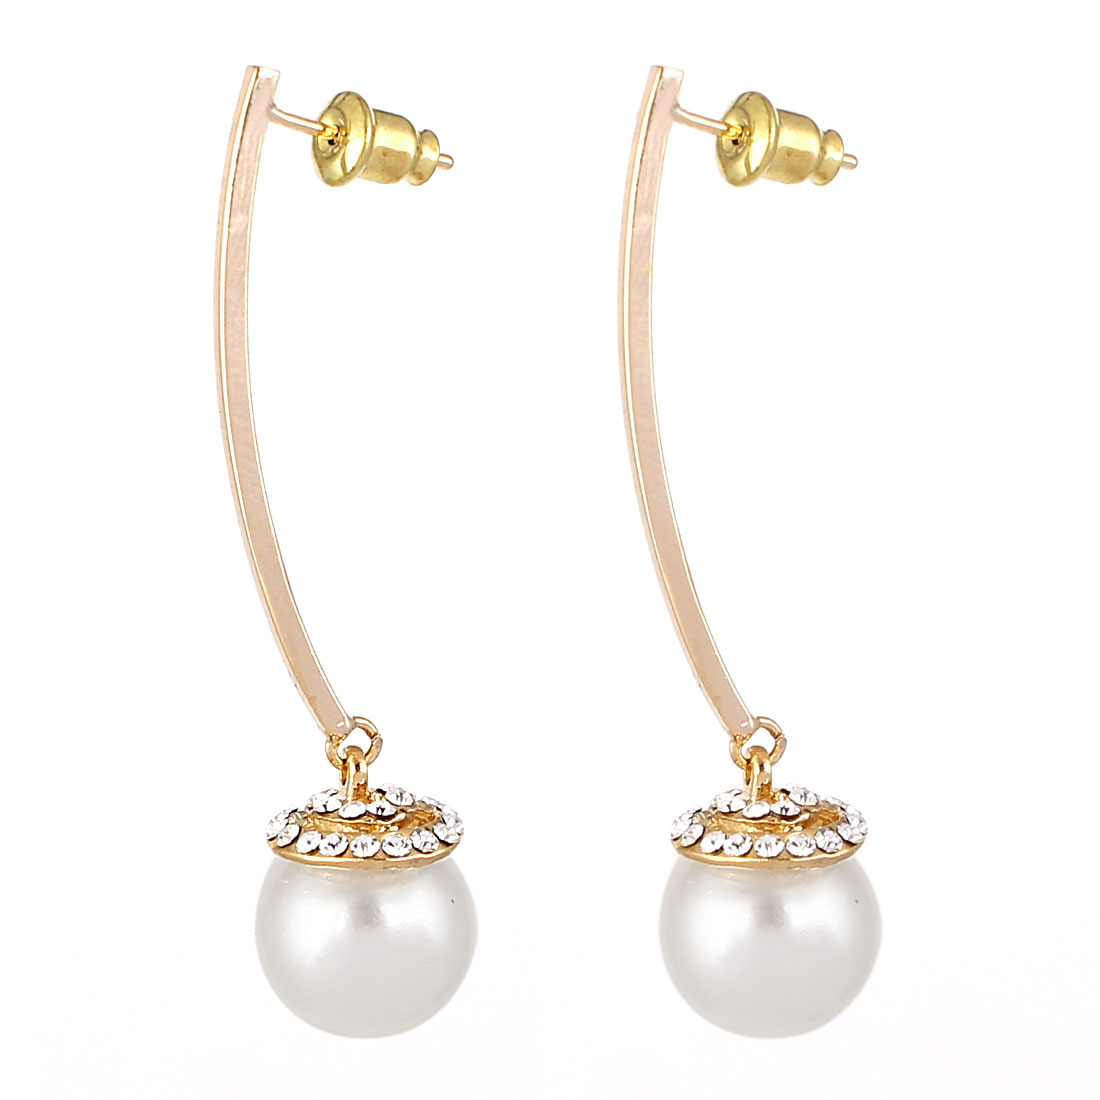 Pair White Imitation Pearl Dangle Clear Rhinestone Inlaid Metal Stud Earrings Eardrops Ear Nails Gold Tone for Women